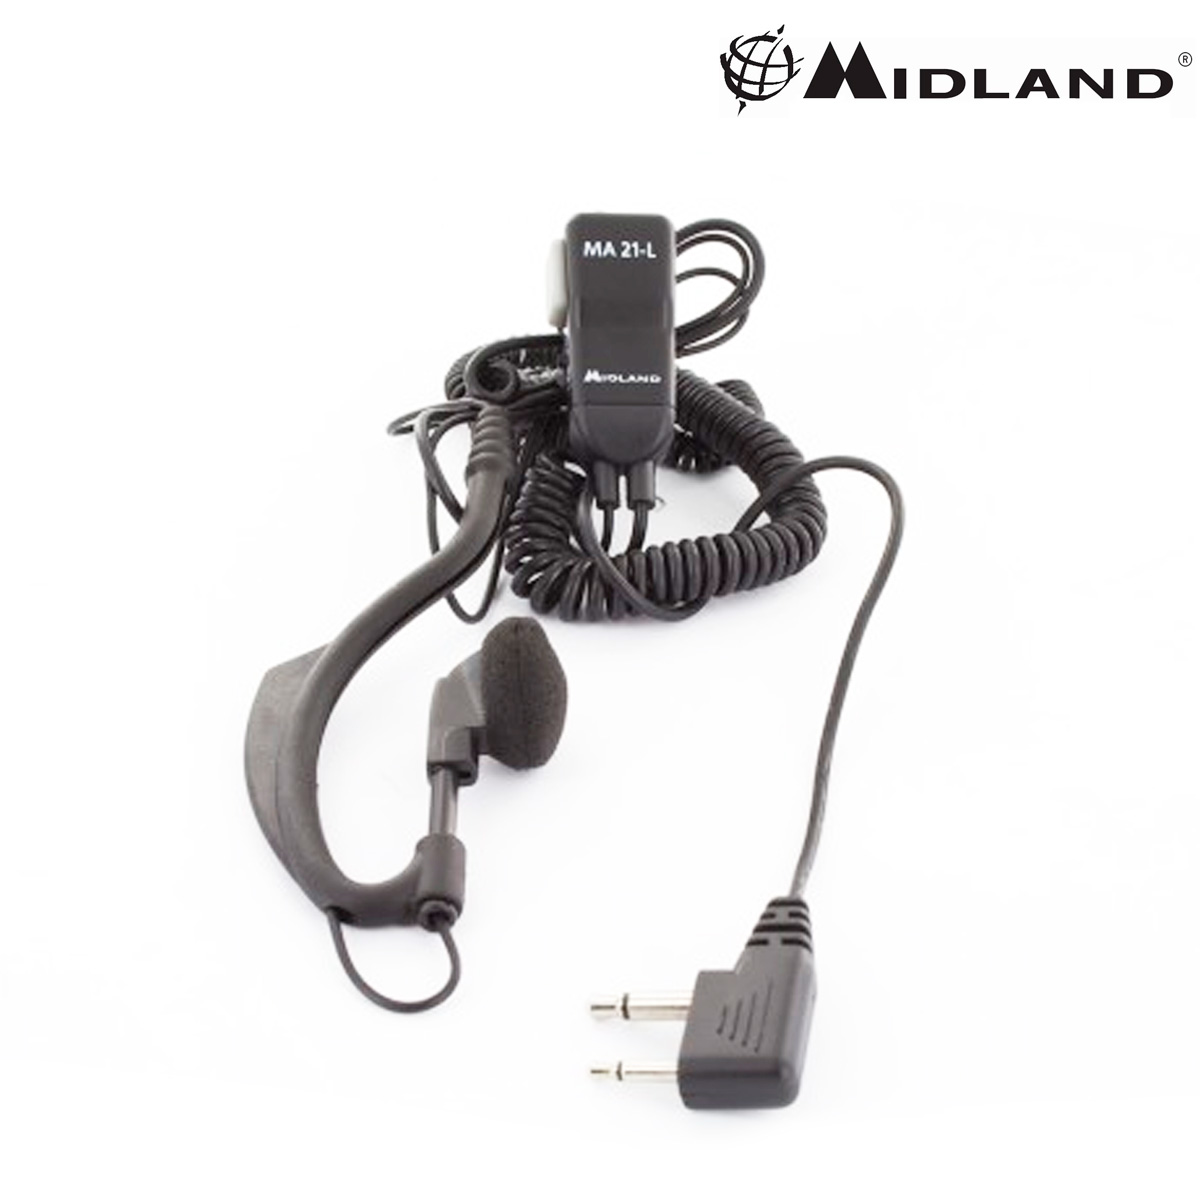 Manos libres midland ma 21li walkie talkie for Manos libres oficina